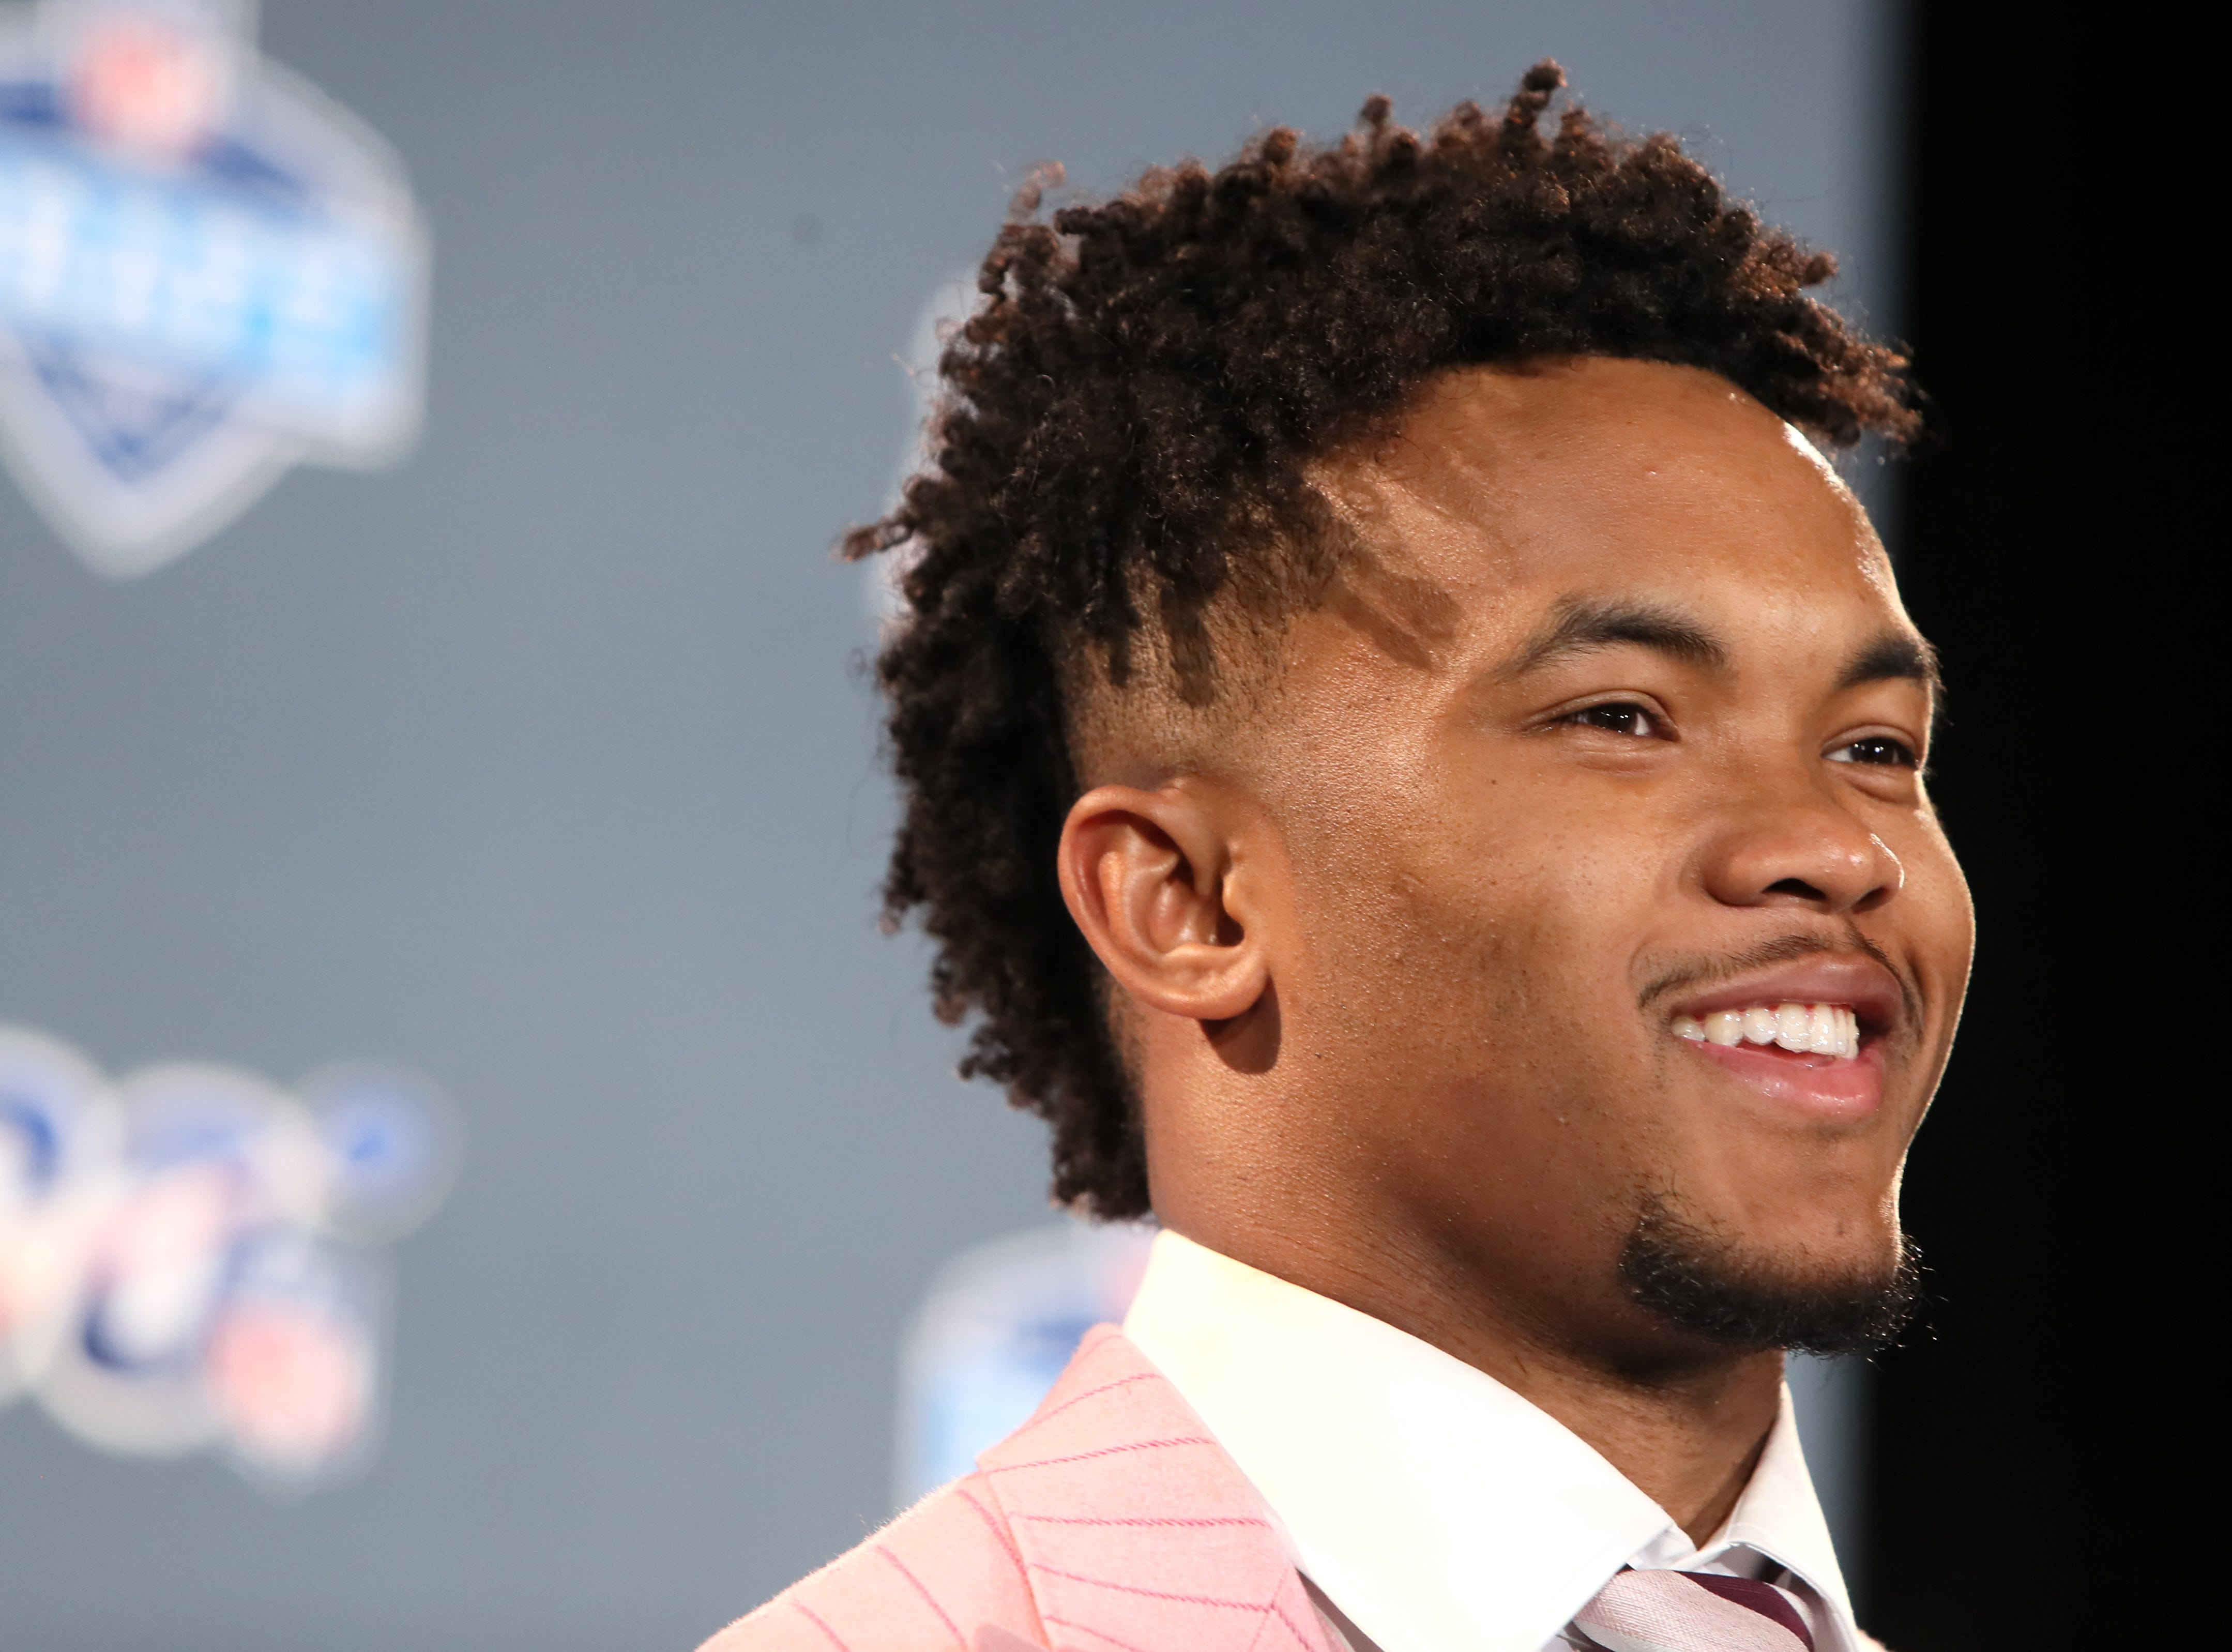 The number one pick selected by the Arizona Cardinals Kyler Murray speaks during a press conference after his selection at the NFL draft in downtown Nashville on Thursday, April 25, 2019.